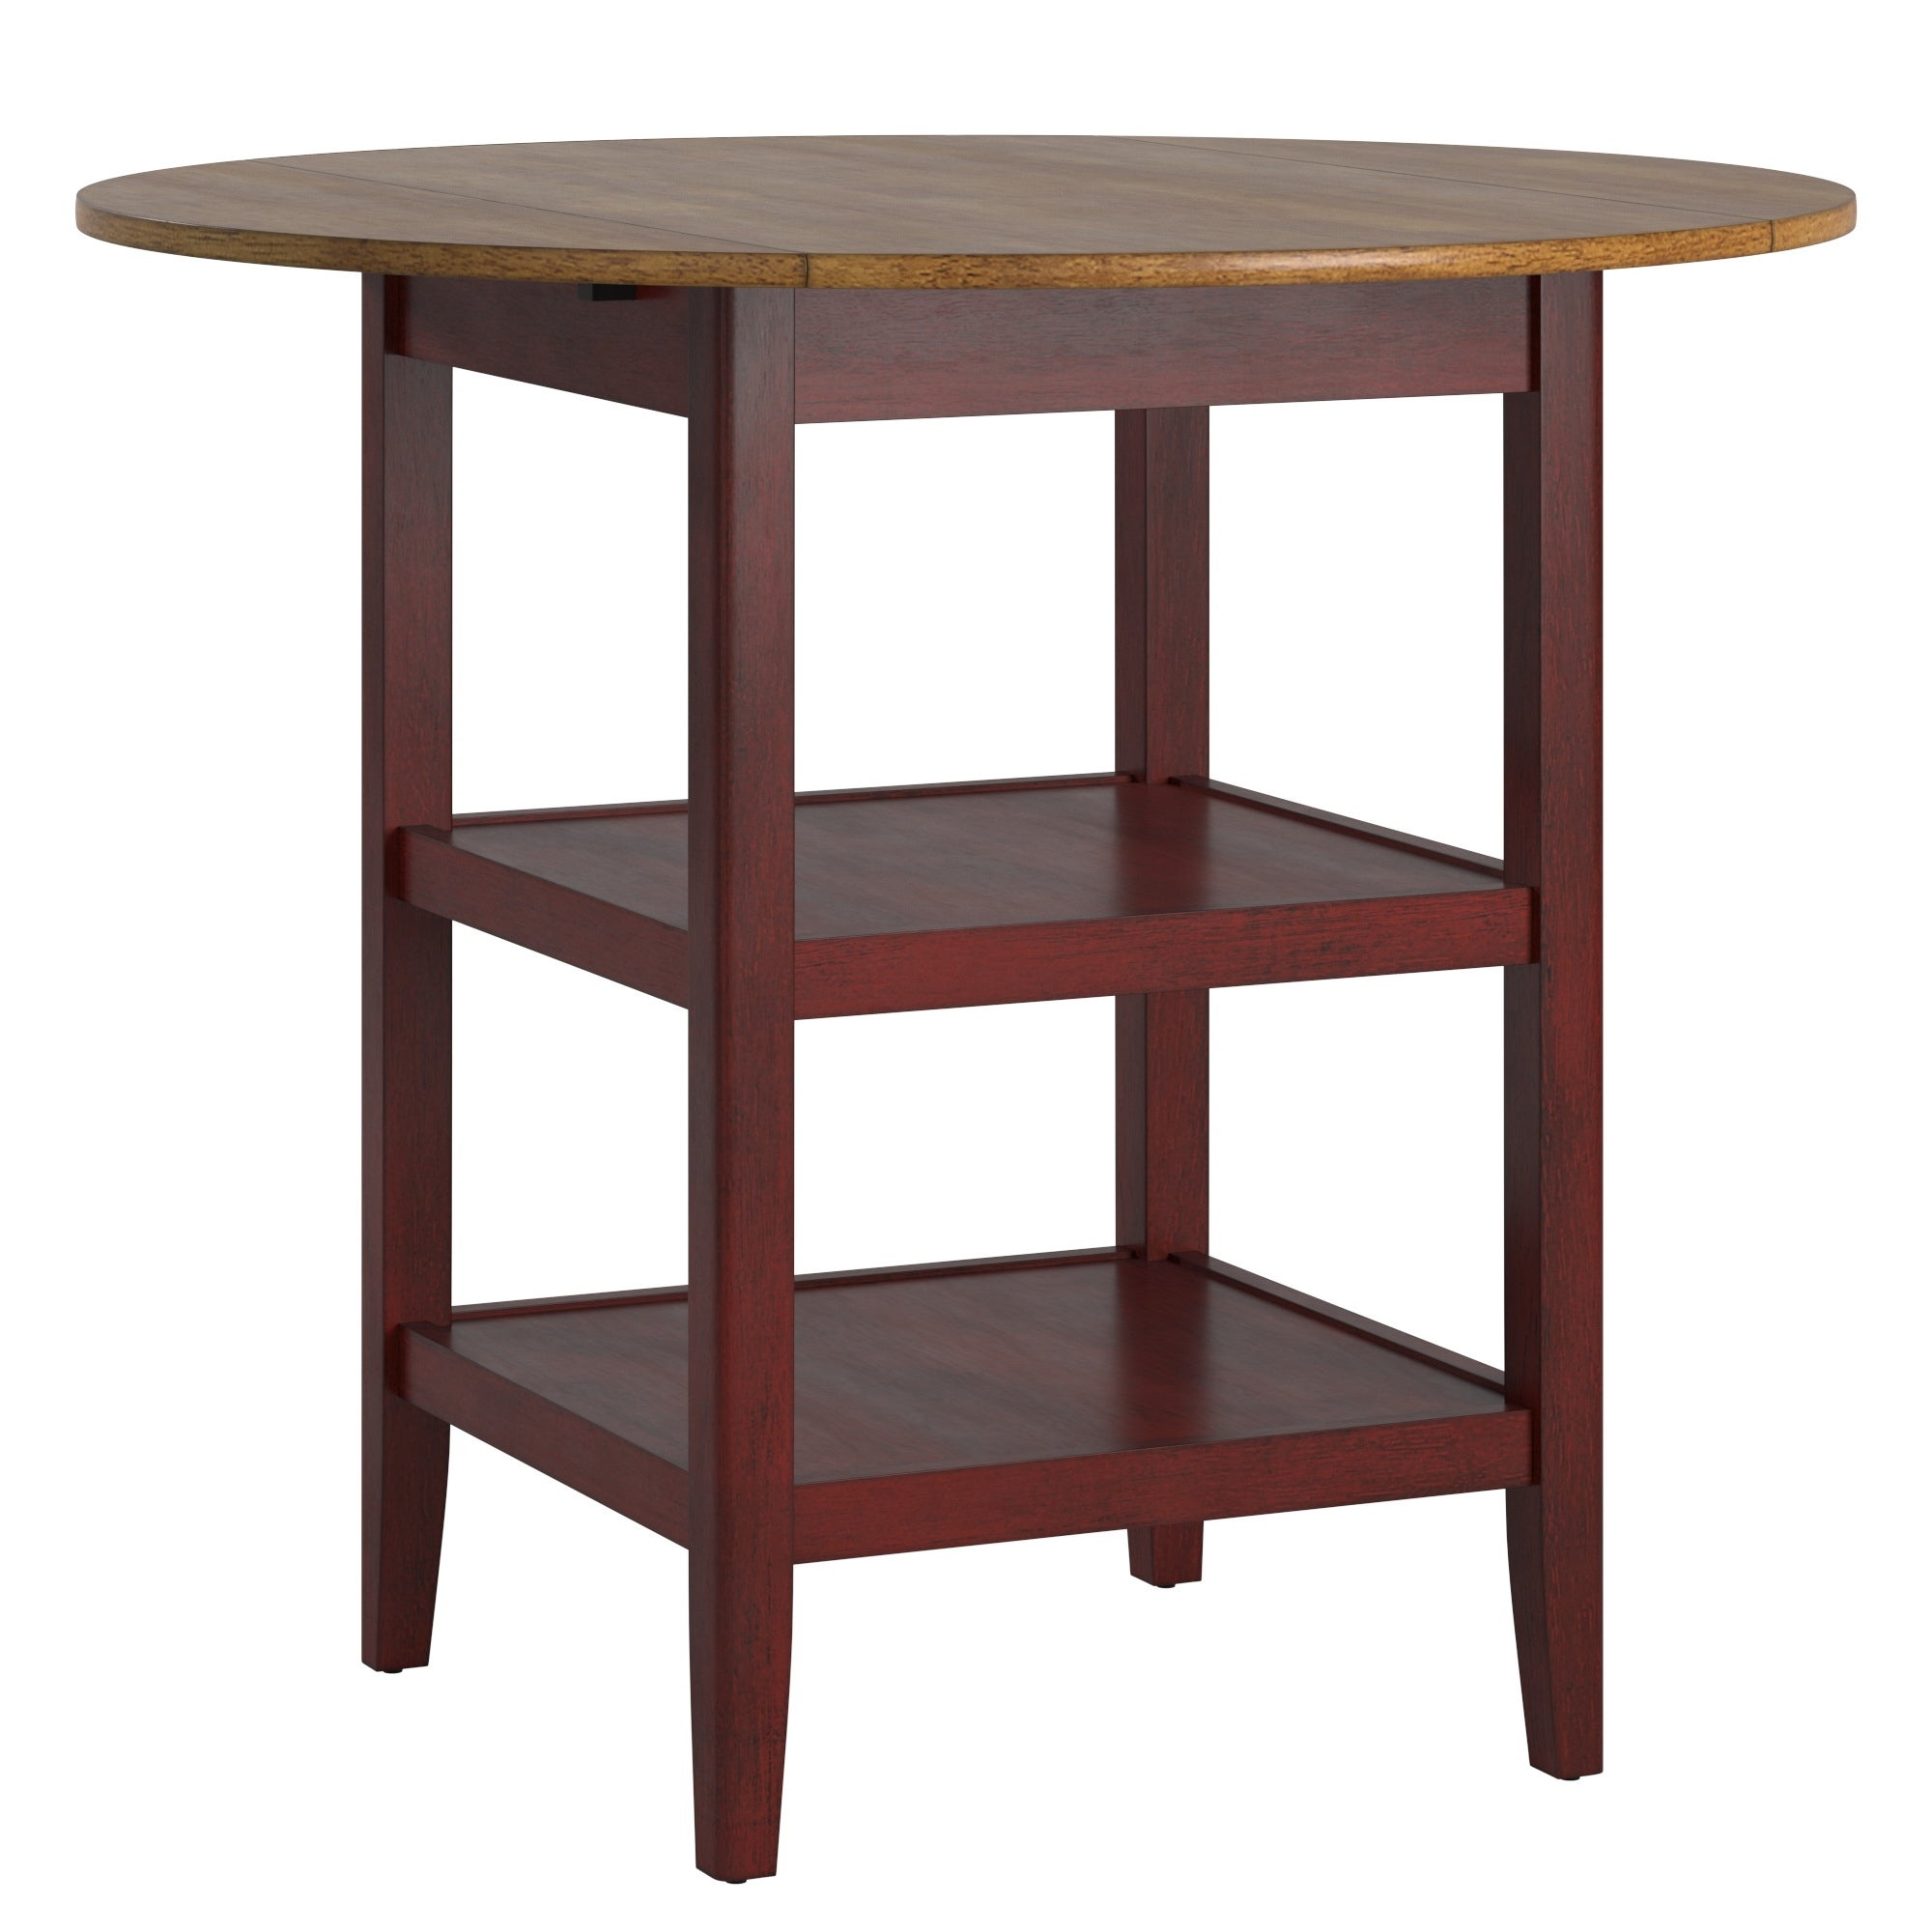 Eleanor Drop Leaf Round Counter Height Table By Inspire Q Classic On Sale Overstock 30865453